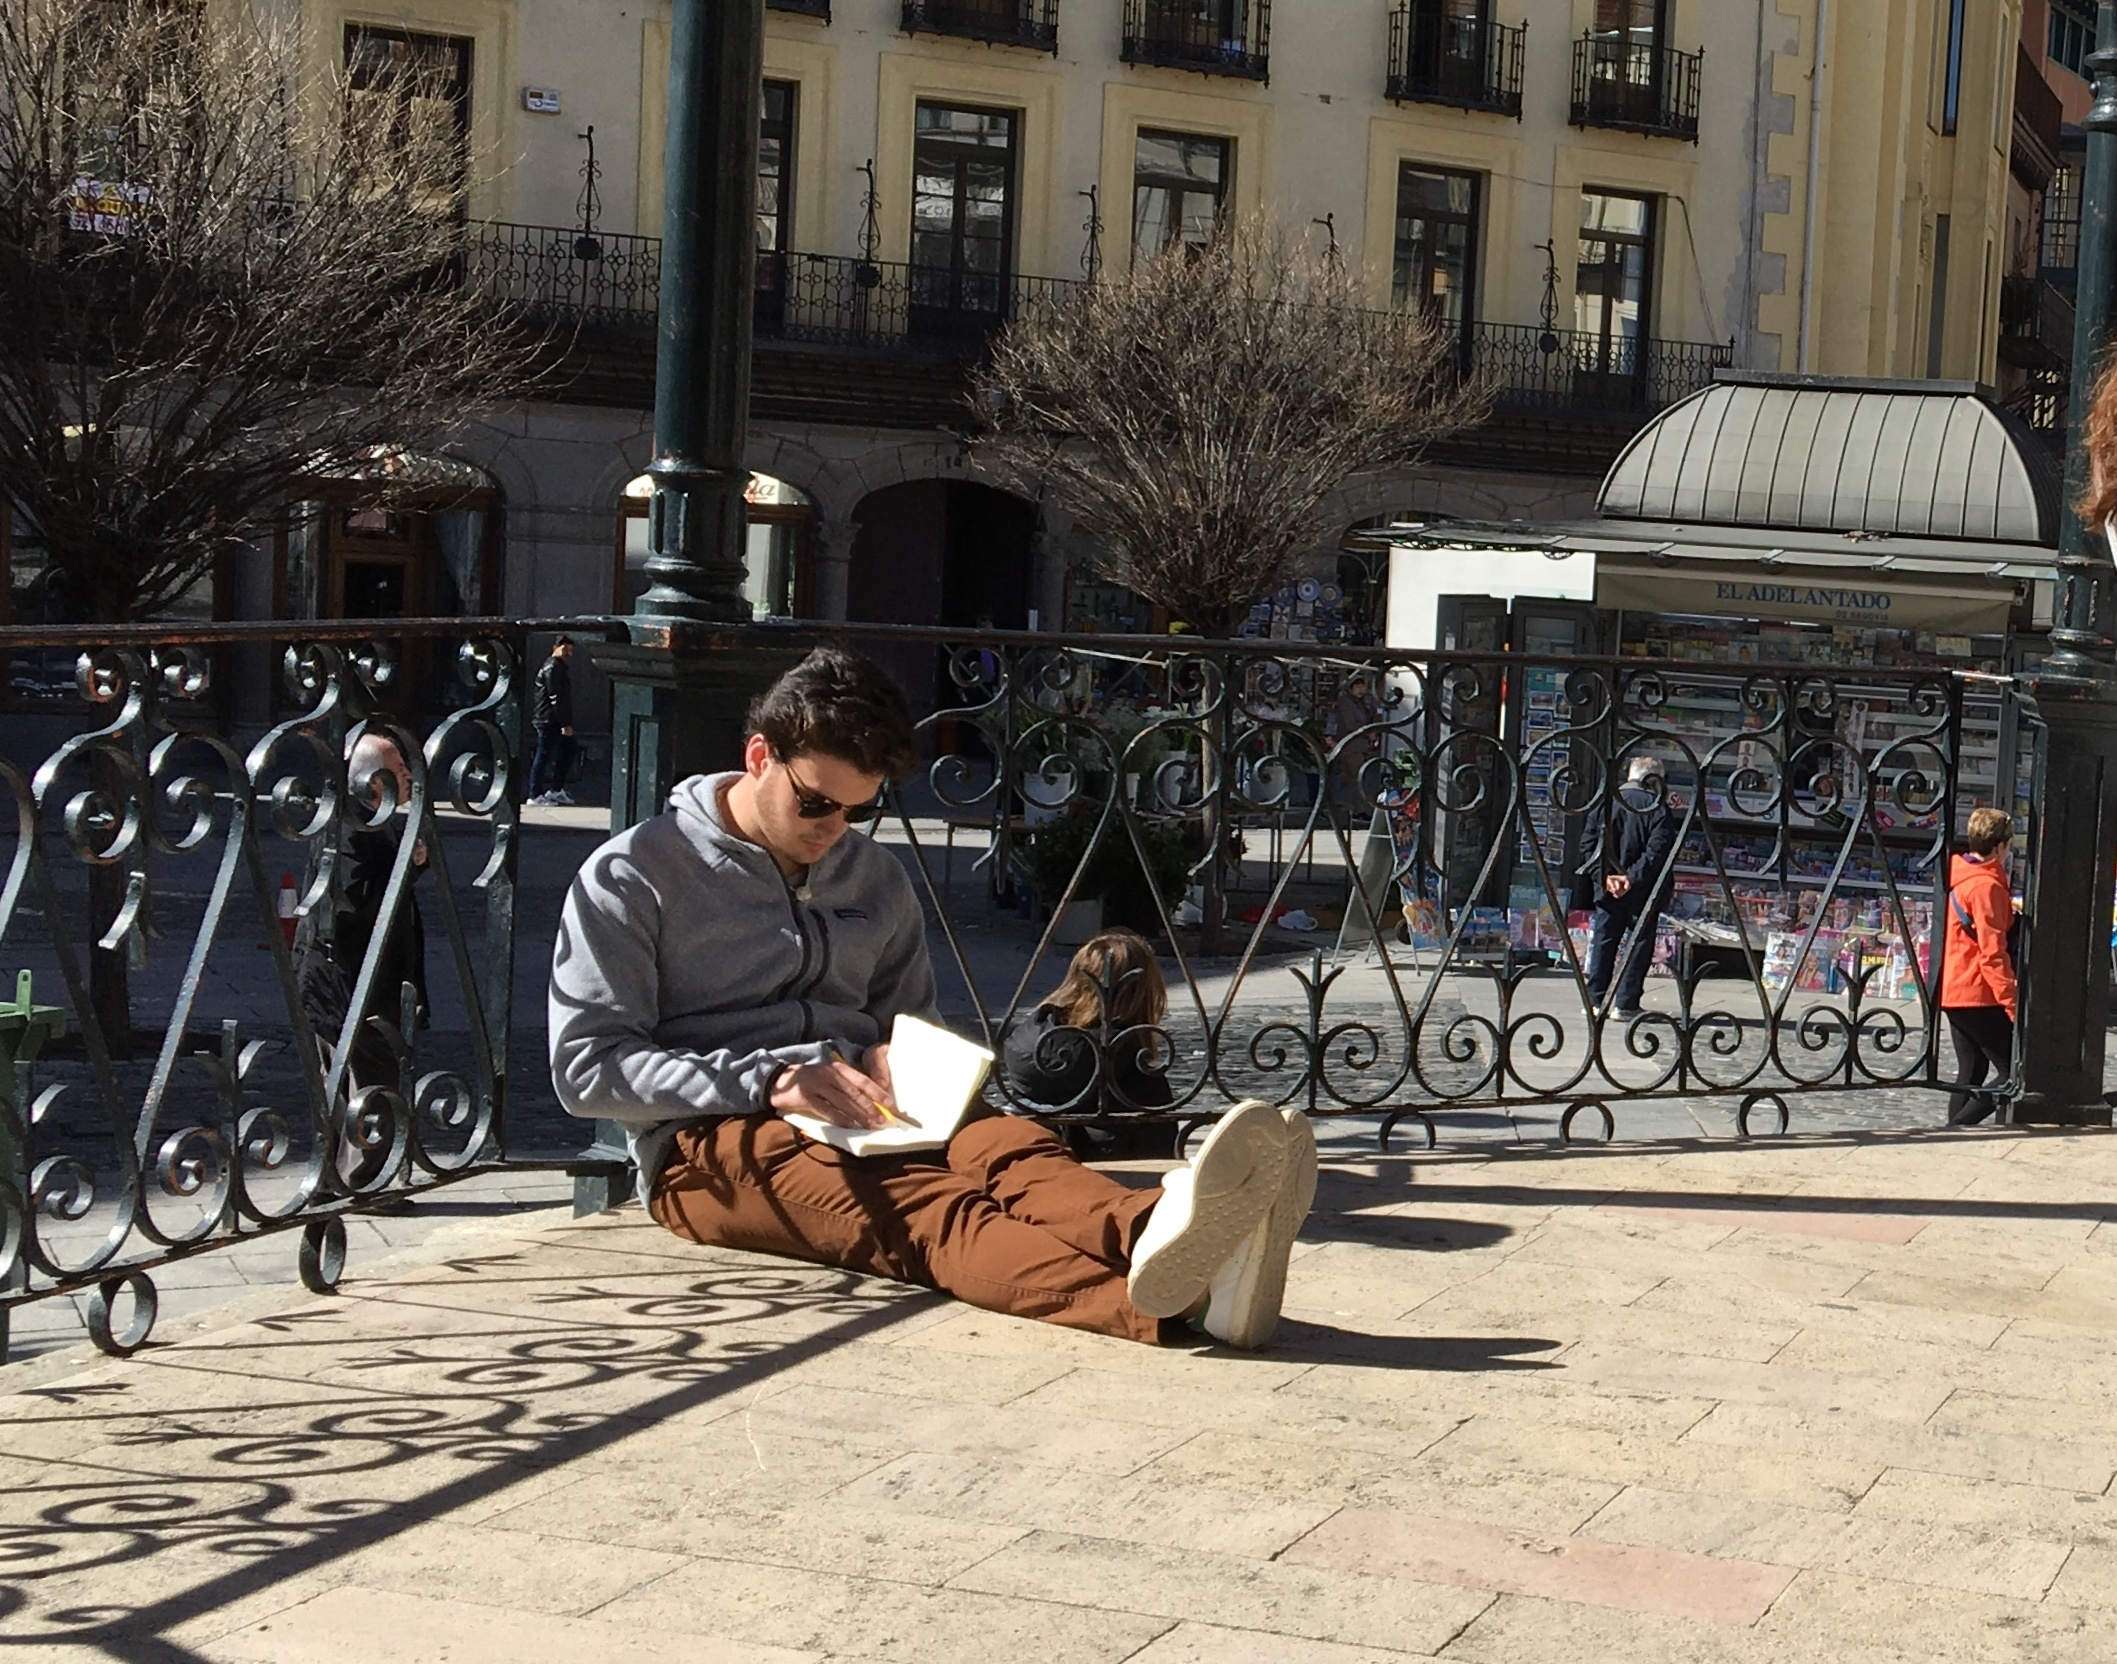 Proctor en Segovia writes in the Plaza Mayor